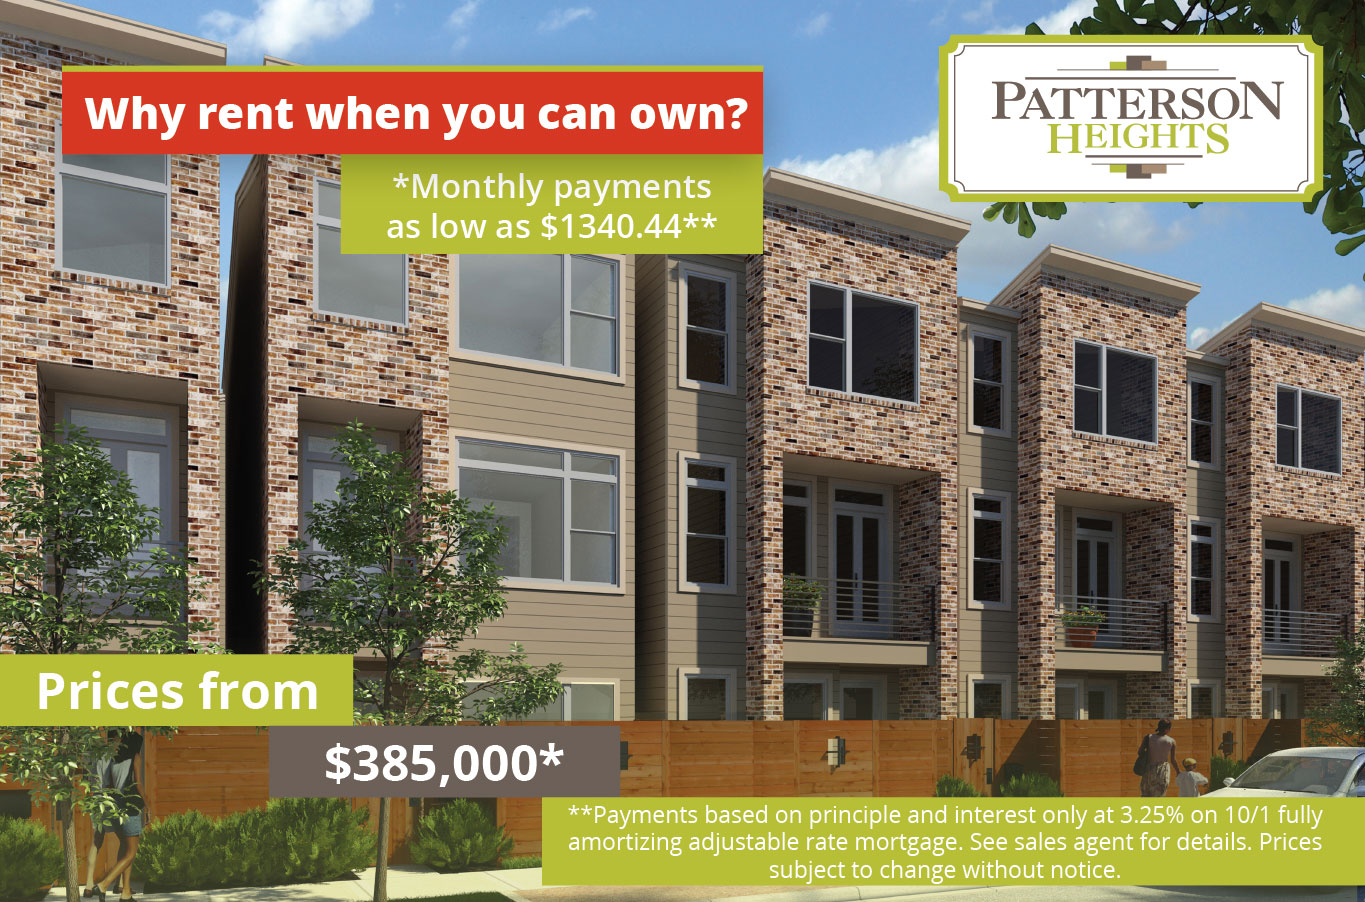 Patterson Heights